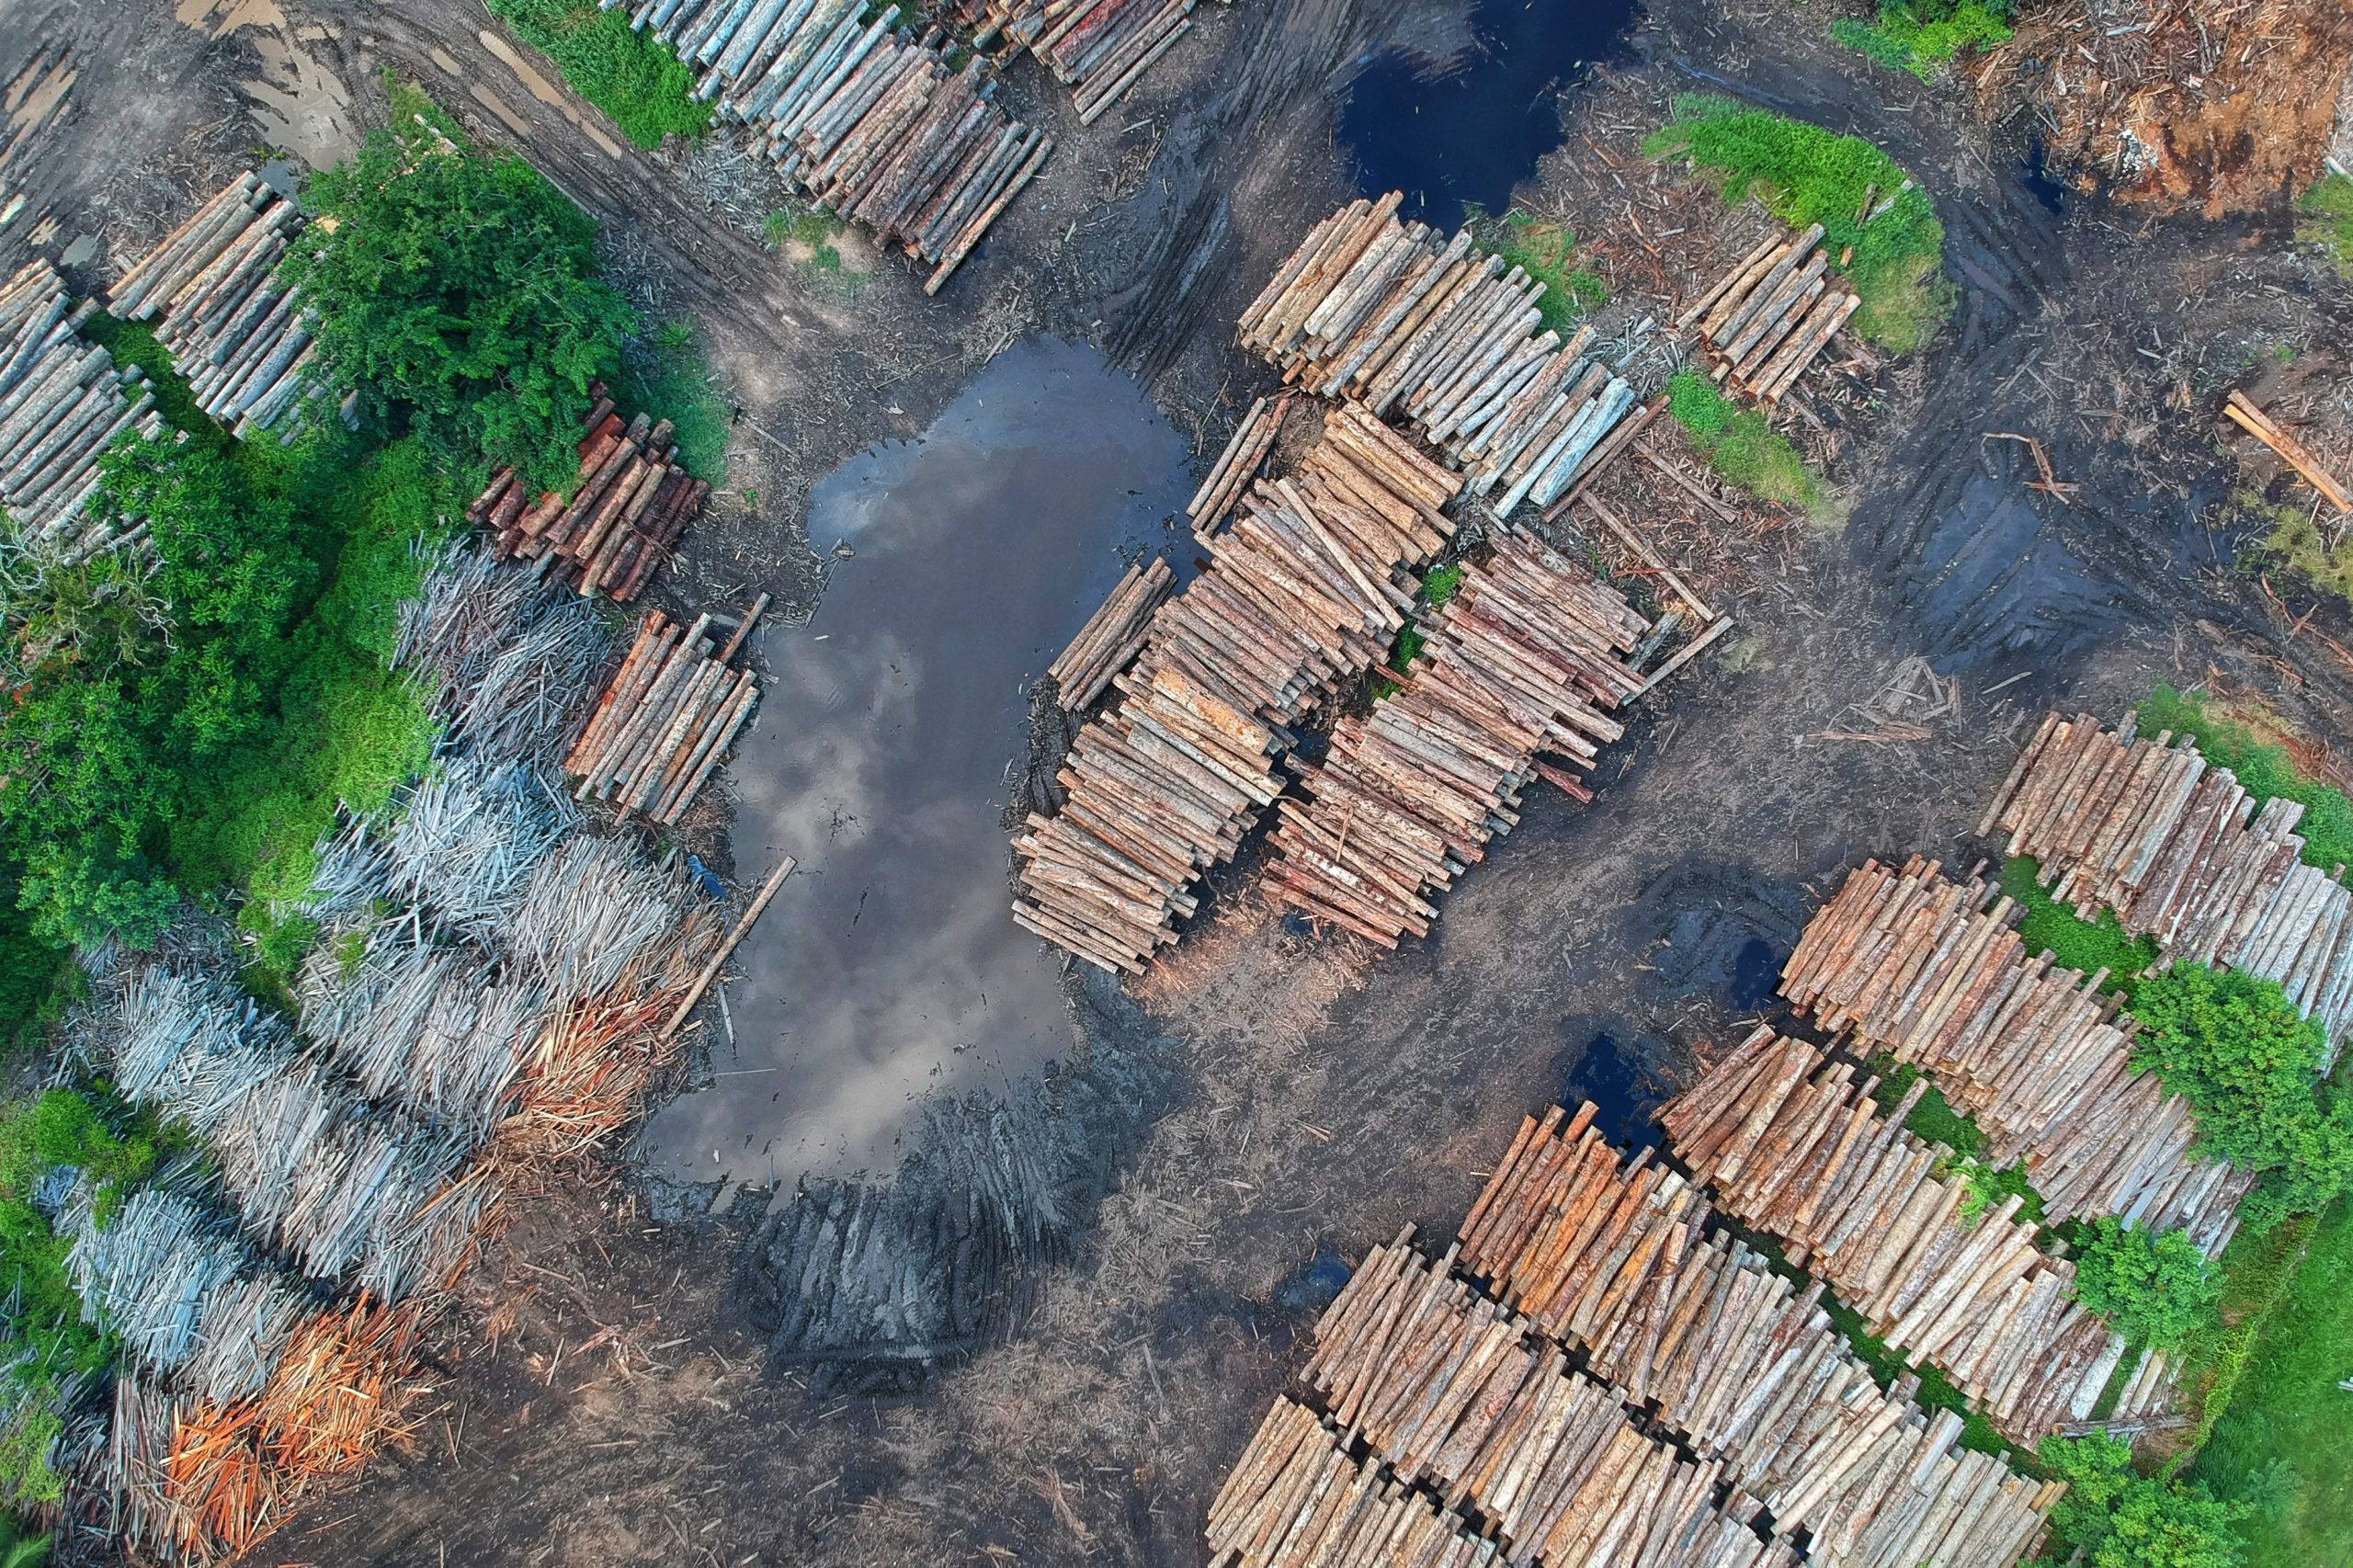 Don't Understand CPWD's U-Turn on Wood Use? Try Modi Govt's Climate Doublespeak.